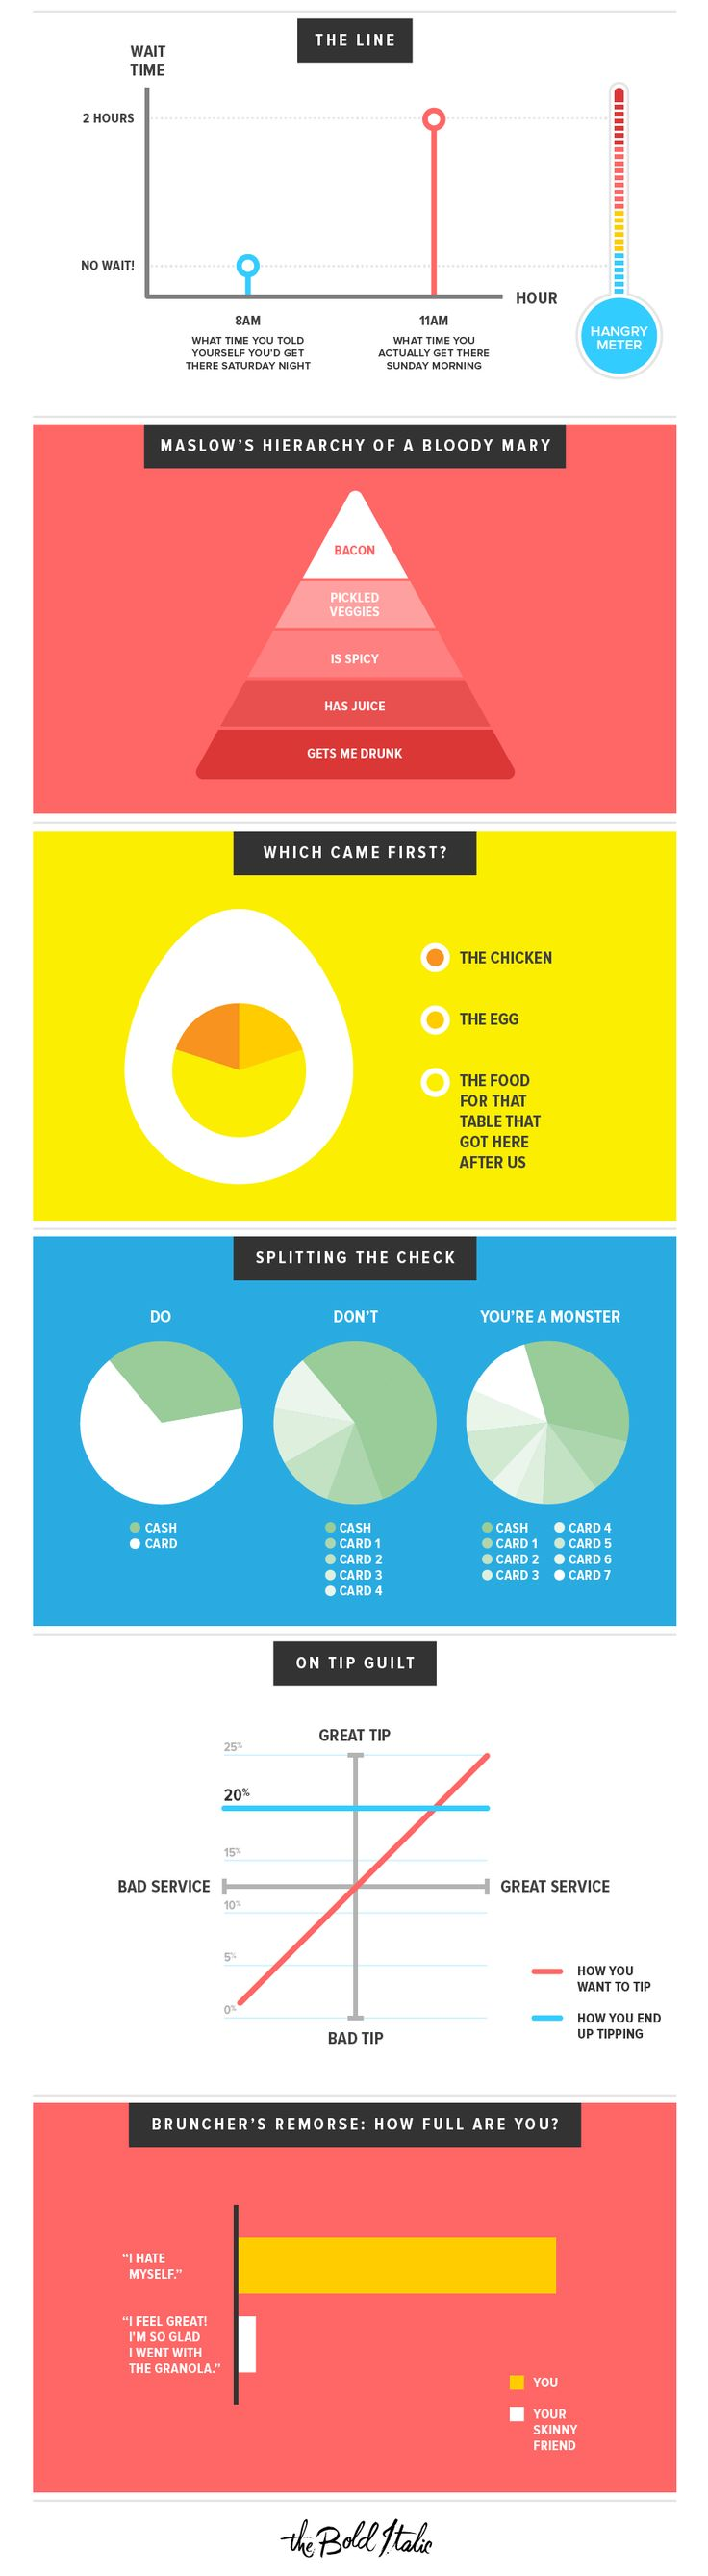 The Phenomenon of #Brunch, in Graphs - The Bold Italic - #SanFrancisco #infographic